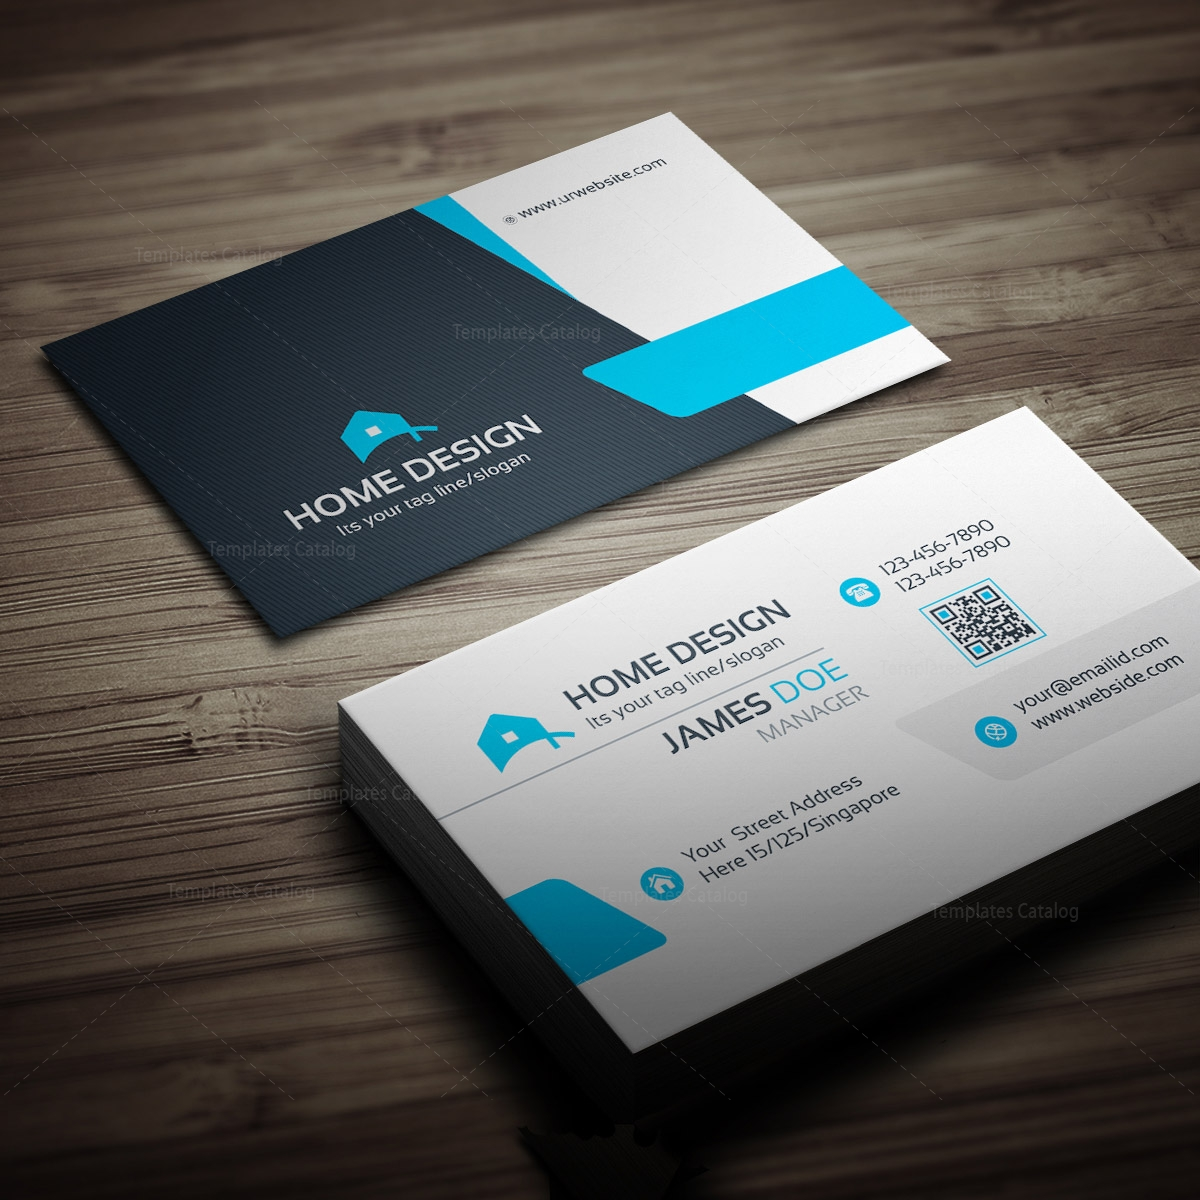 buiness card template - home design business card template 000258 template catalog